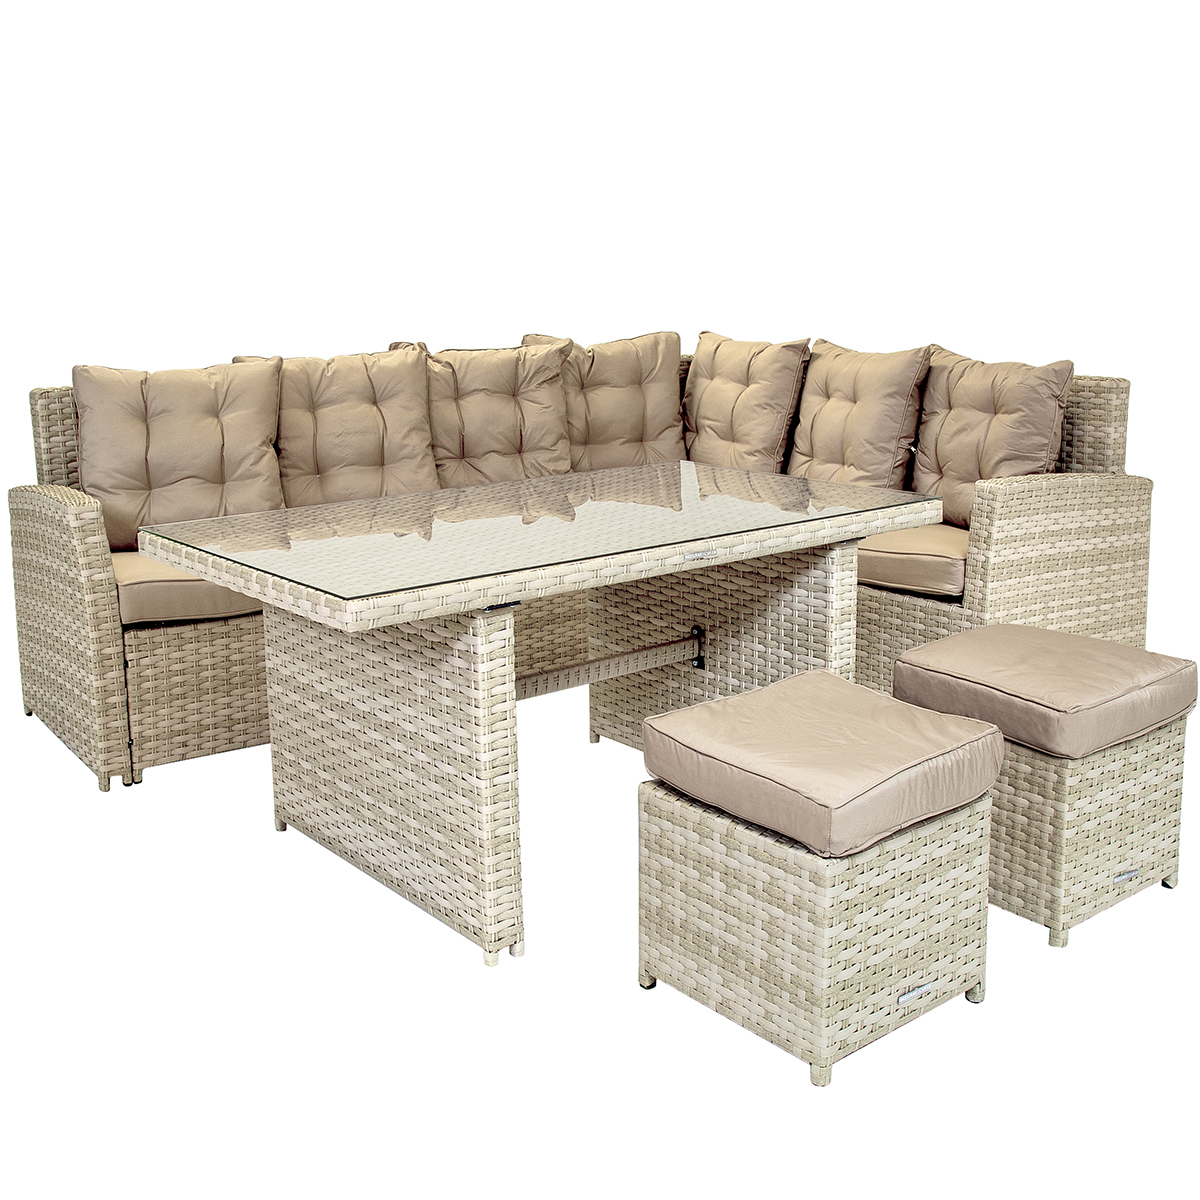 charles bentley 6 seater rattan garden dining set light grey